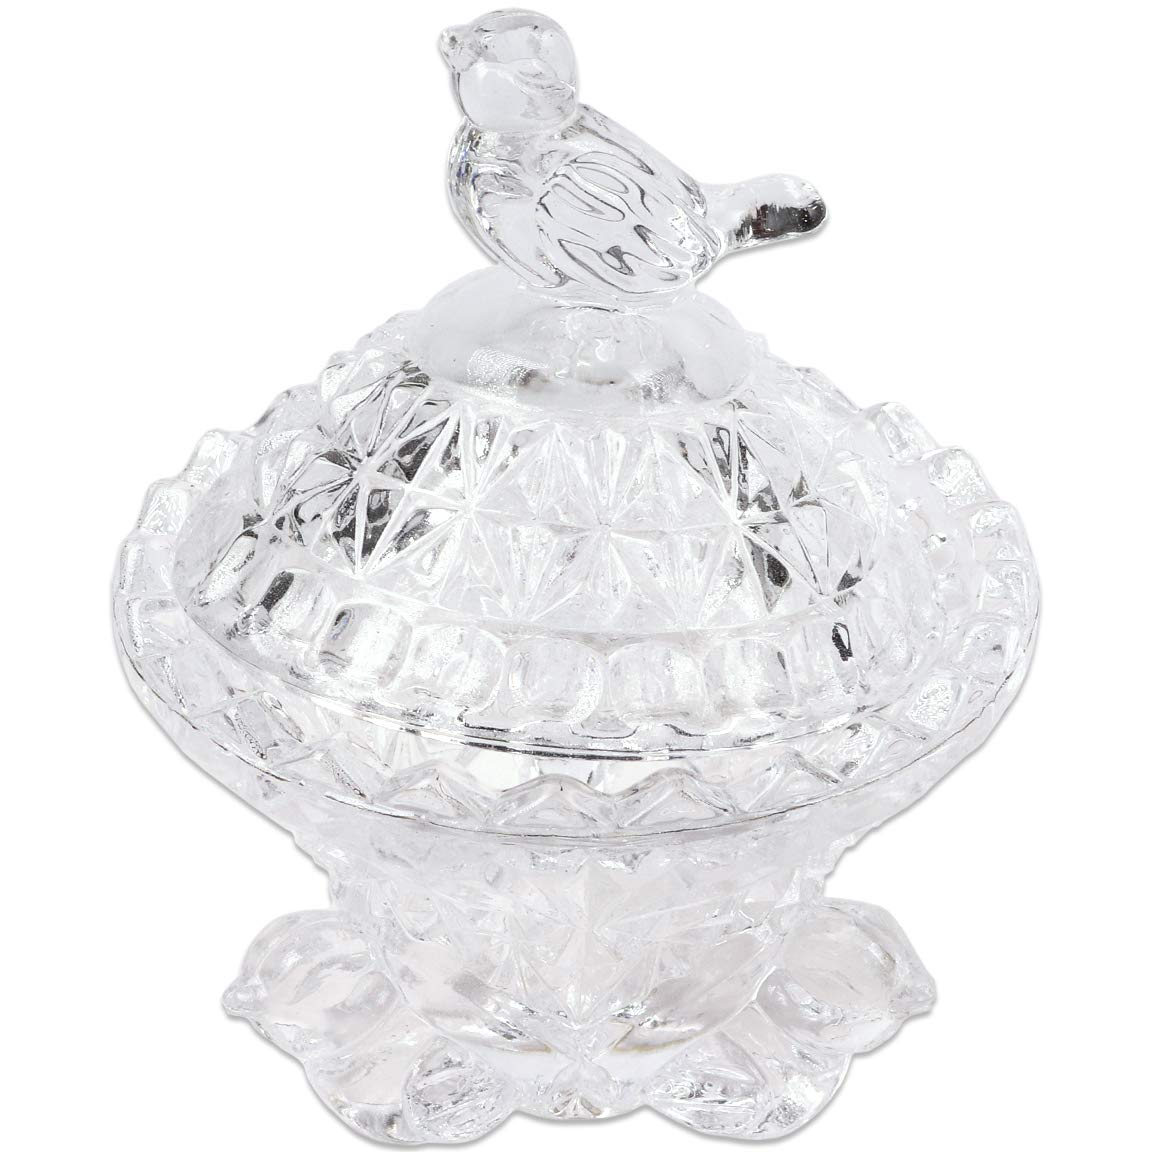 Fuji Premium Crystal Bird Shaped Glass Dappen Dish Holder with Lid Or Small Accessories Jewelry Holder. Design Unique. Best For Gift.